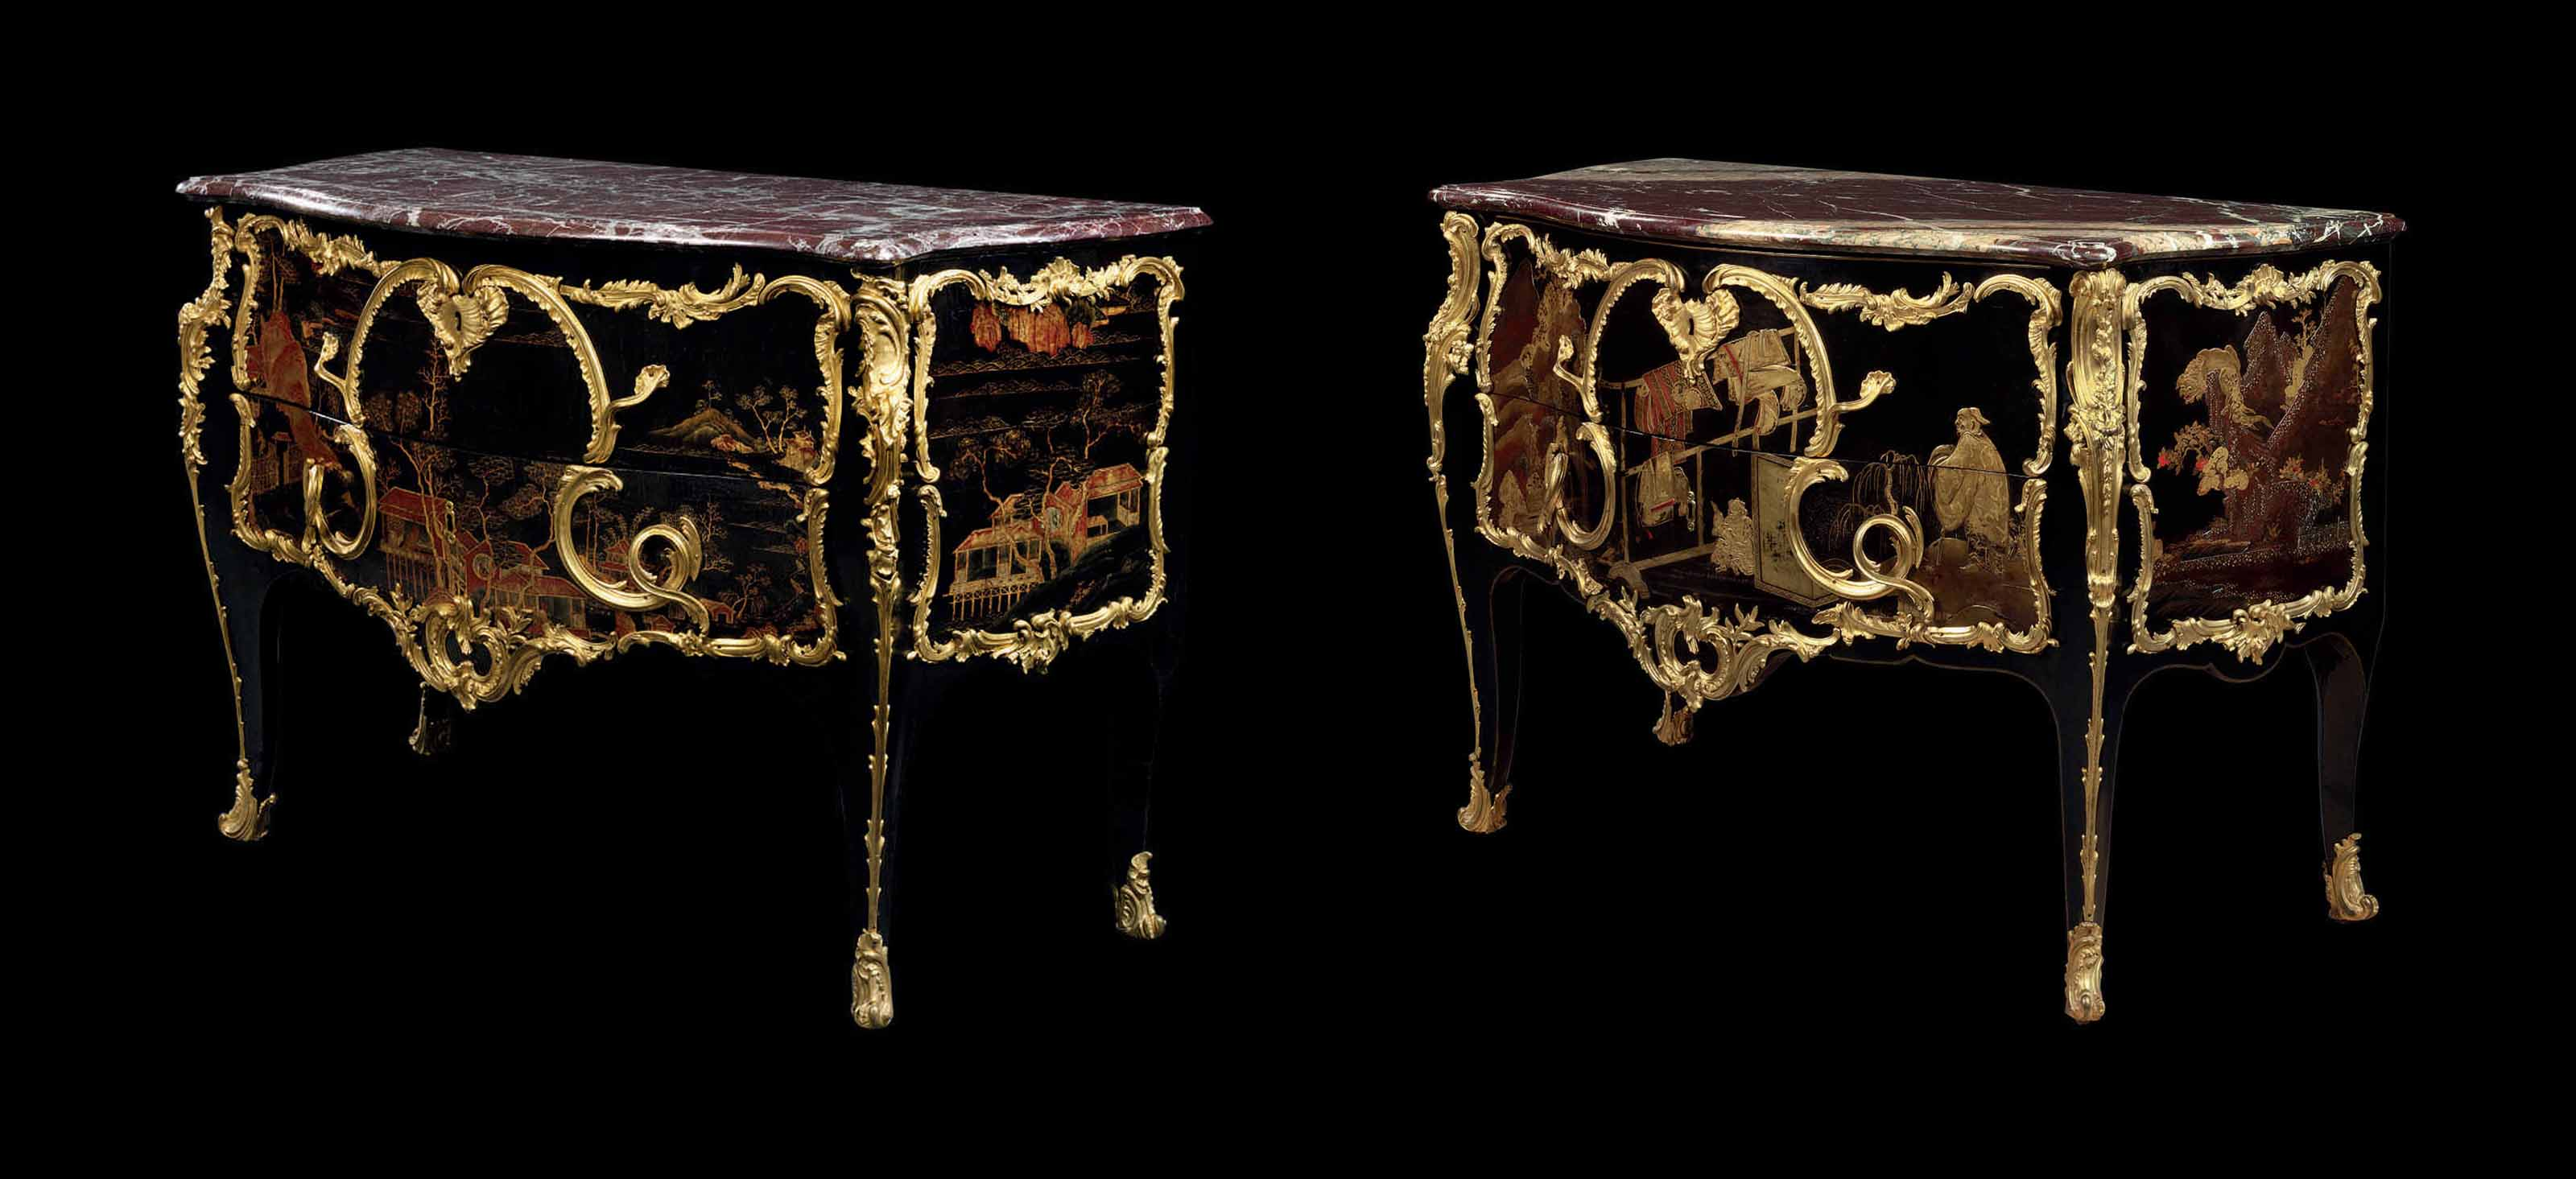 A NEAR PAIR OF LOUIS XV ORMOLU-MOUNTED JAPANESE AND CHINESE LACQUER COMMODES